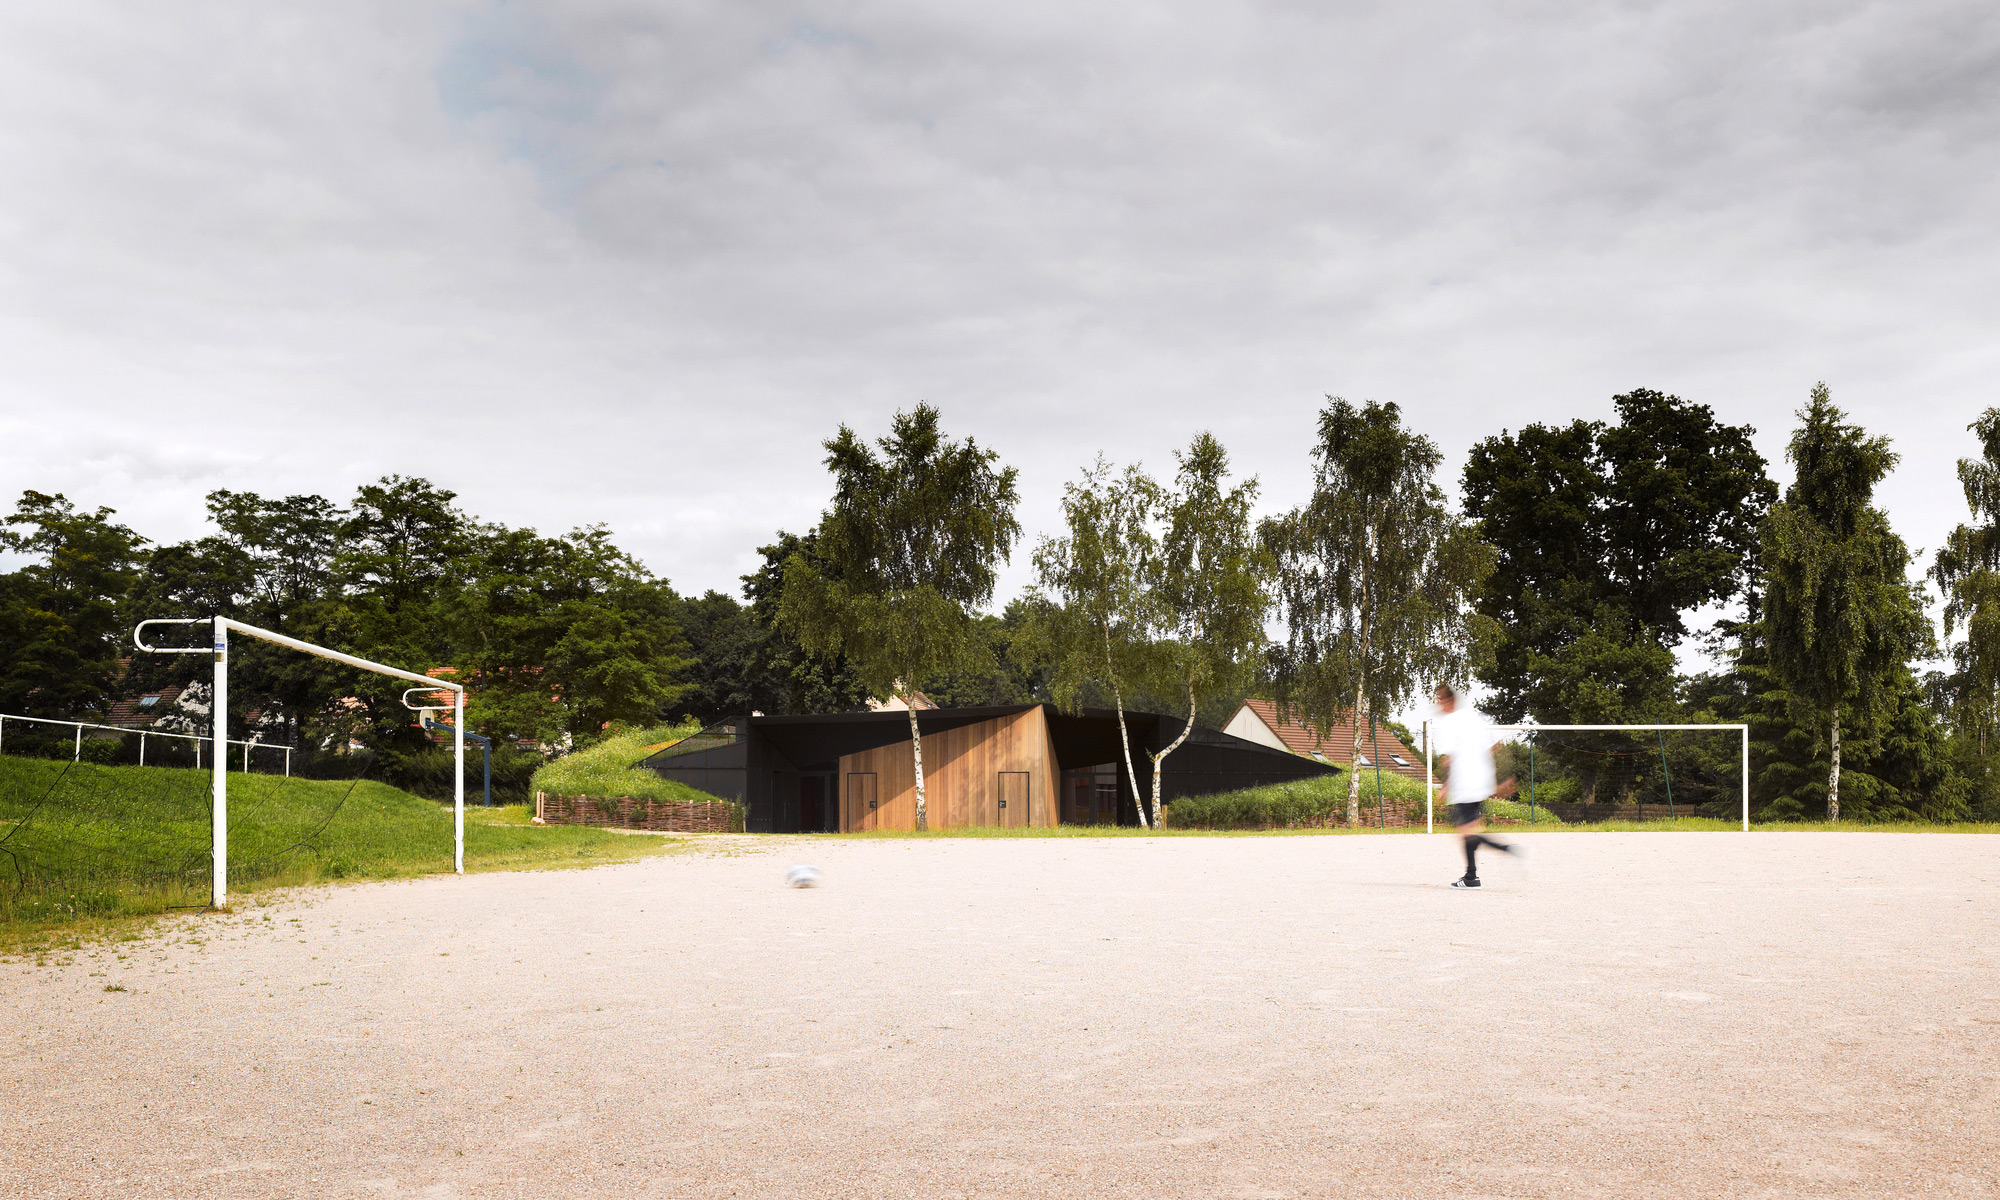 Hidden Locker Rooms / MU Architecture + Ateliers Les Particules (2)